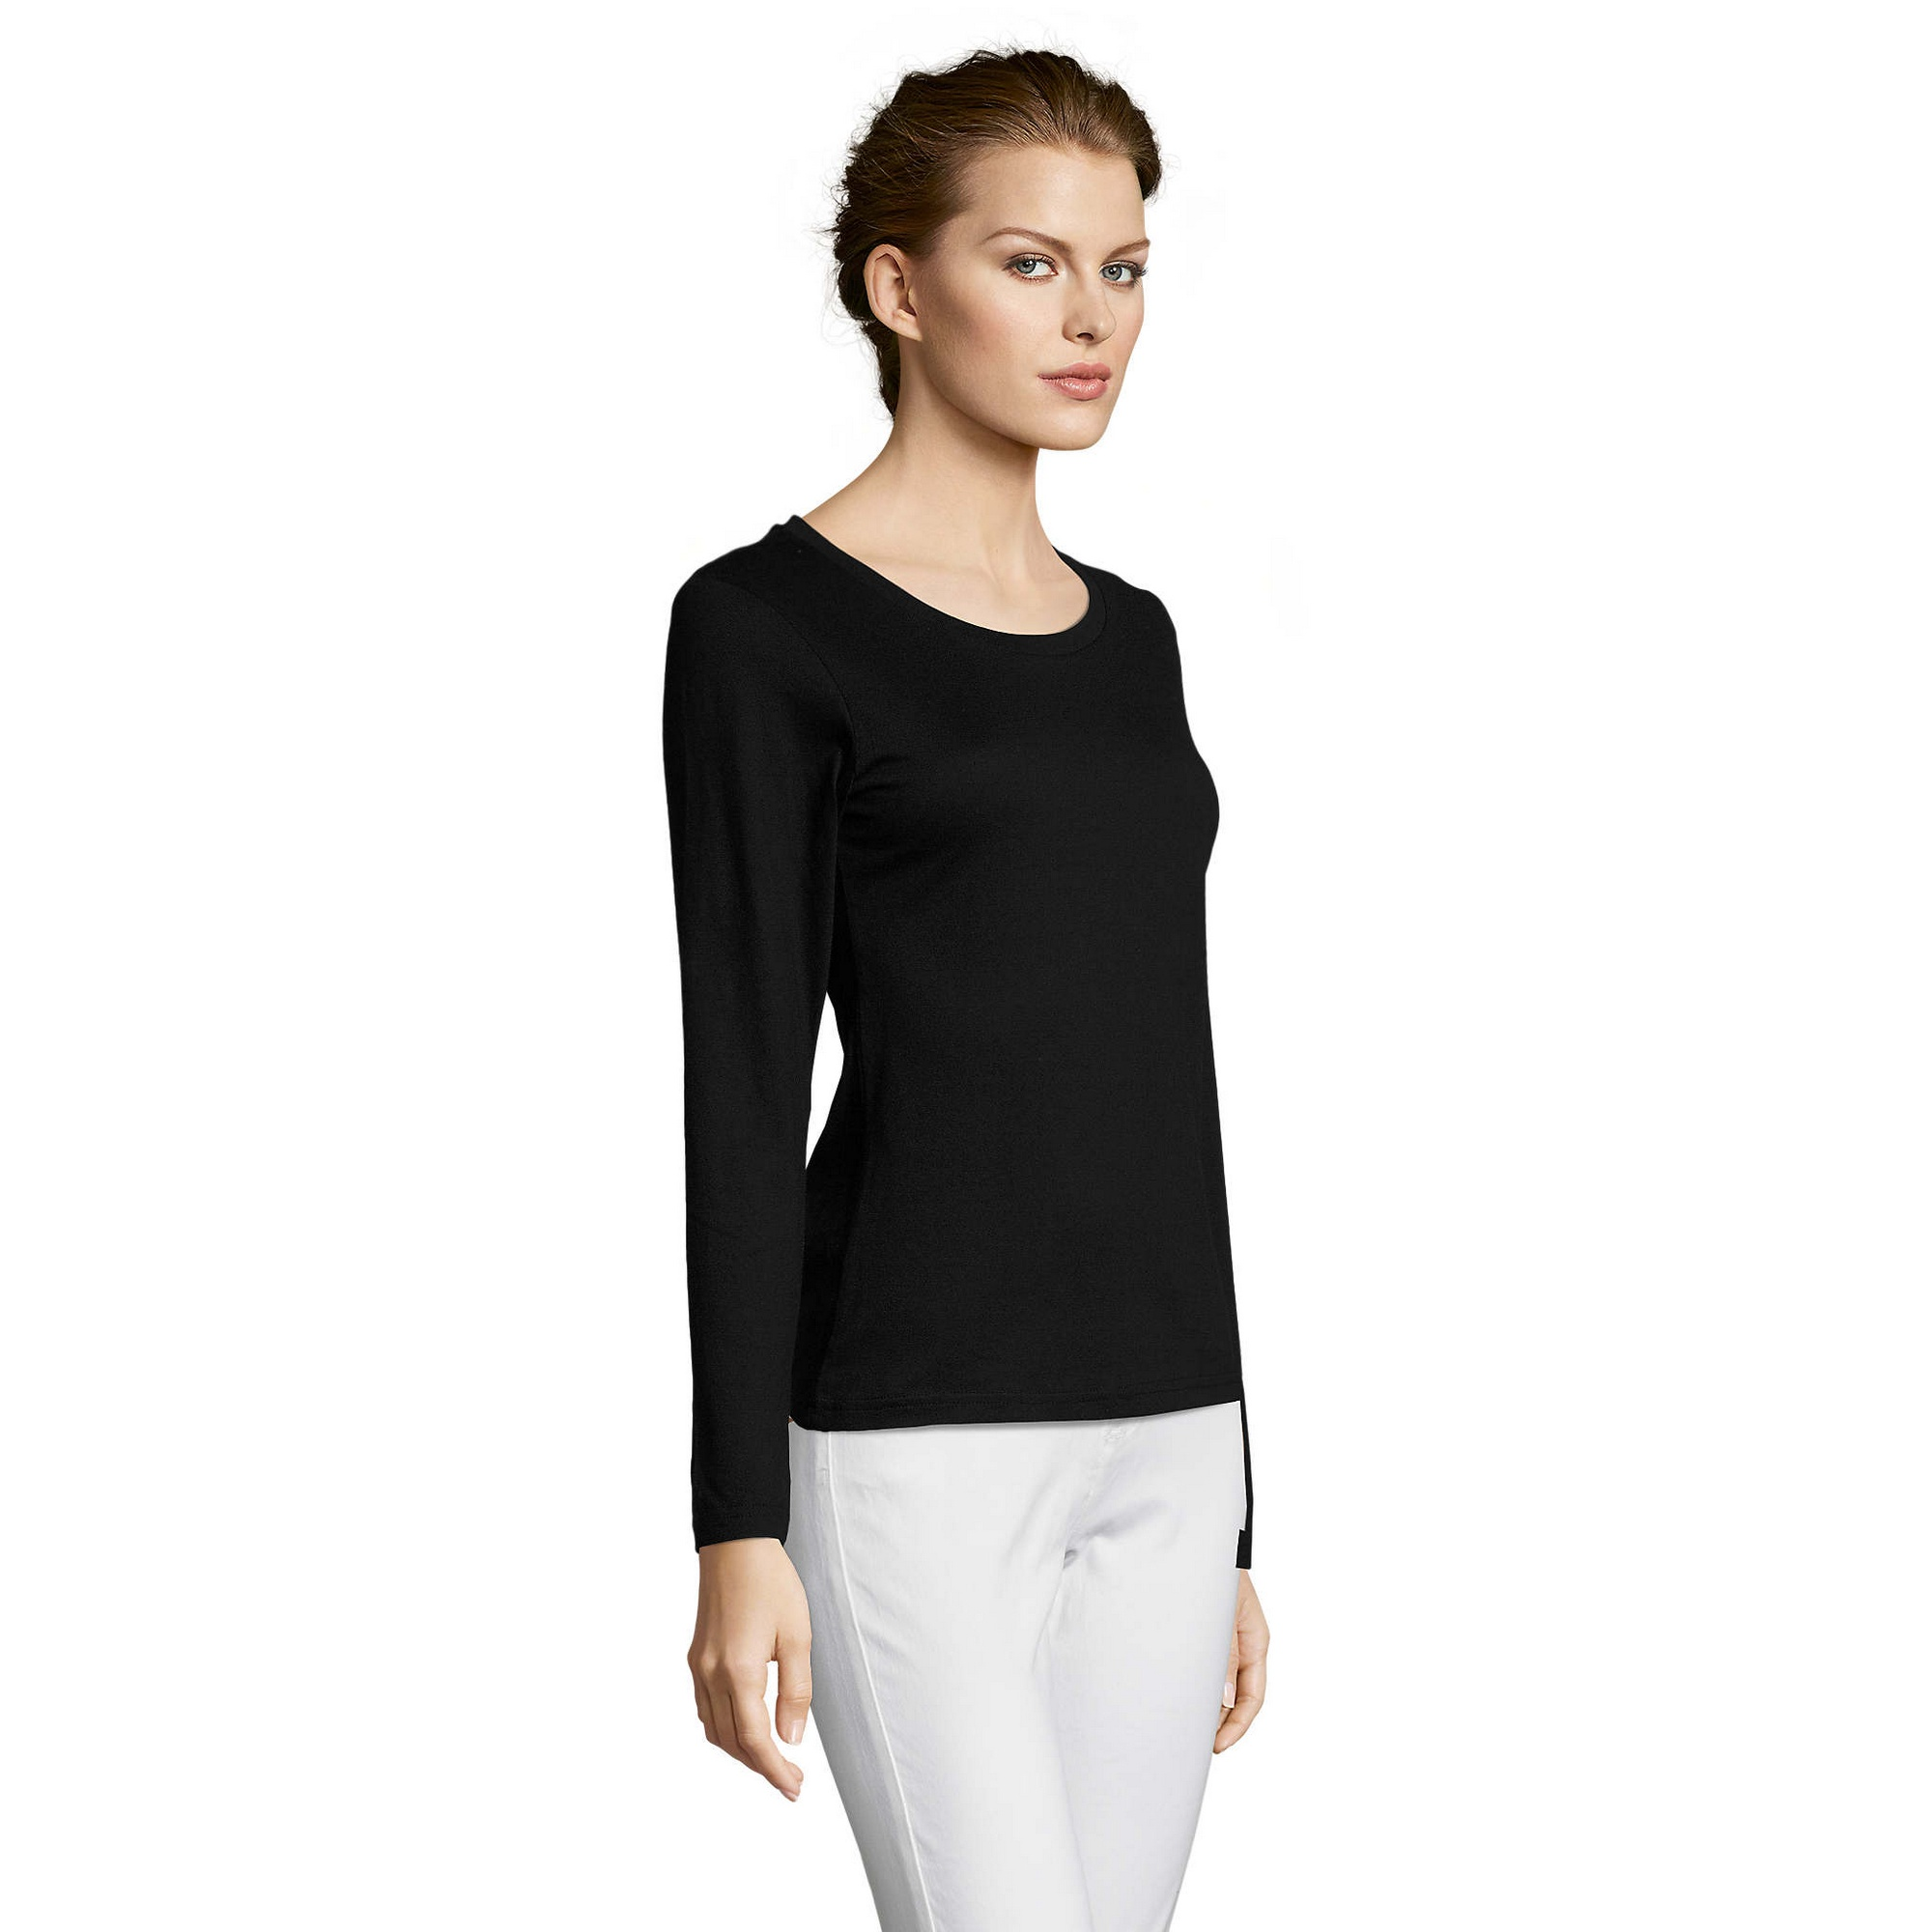 SOLS-Womens-Ladies-Majestic-Long-Sleeve-Coloured-Cotton-T-Shirt-PC314 miniatura 17